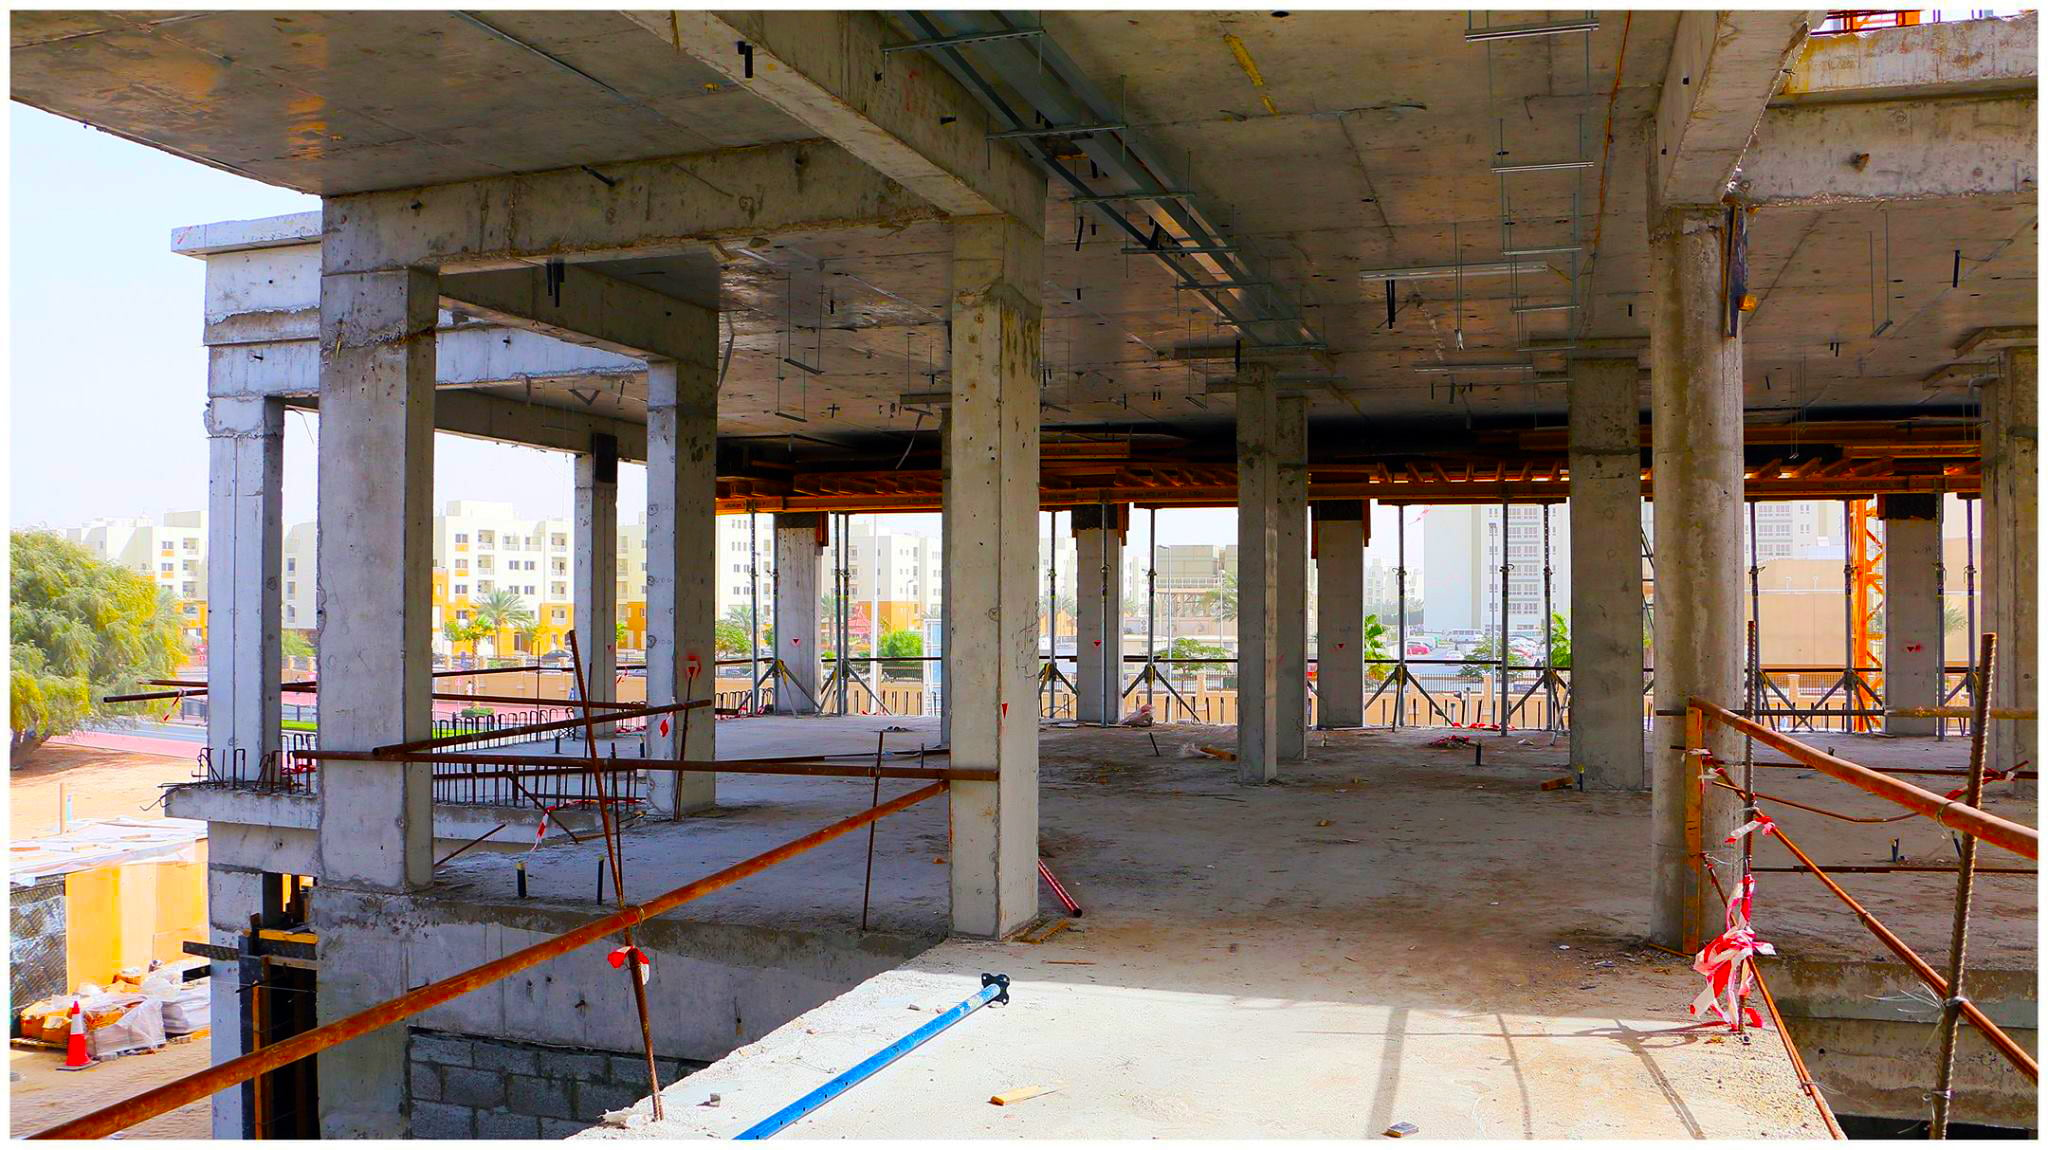 Photograph showing the progress made so far in construction the new Ambassador School Dubai campus in Al Khail Gate